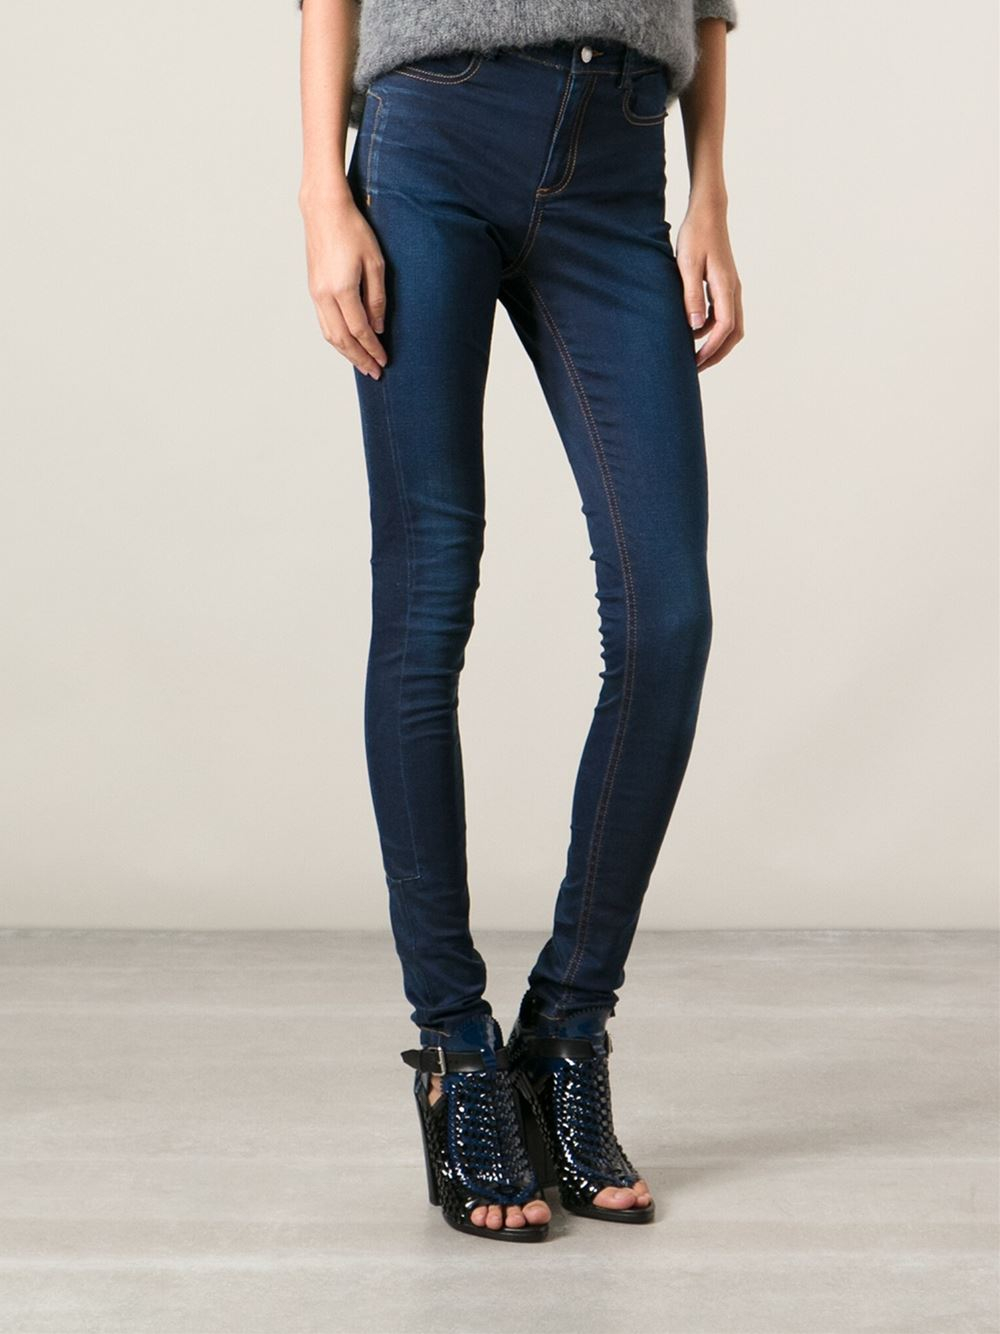 Costume national High Waisted Skinny Jeans in Blue | Lyst